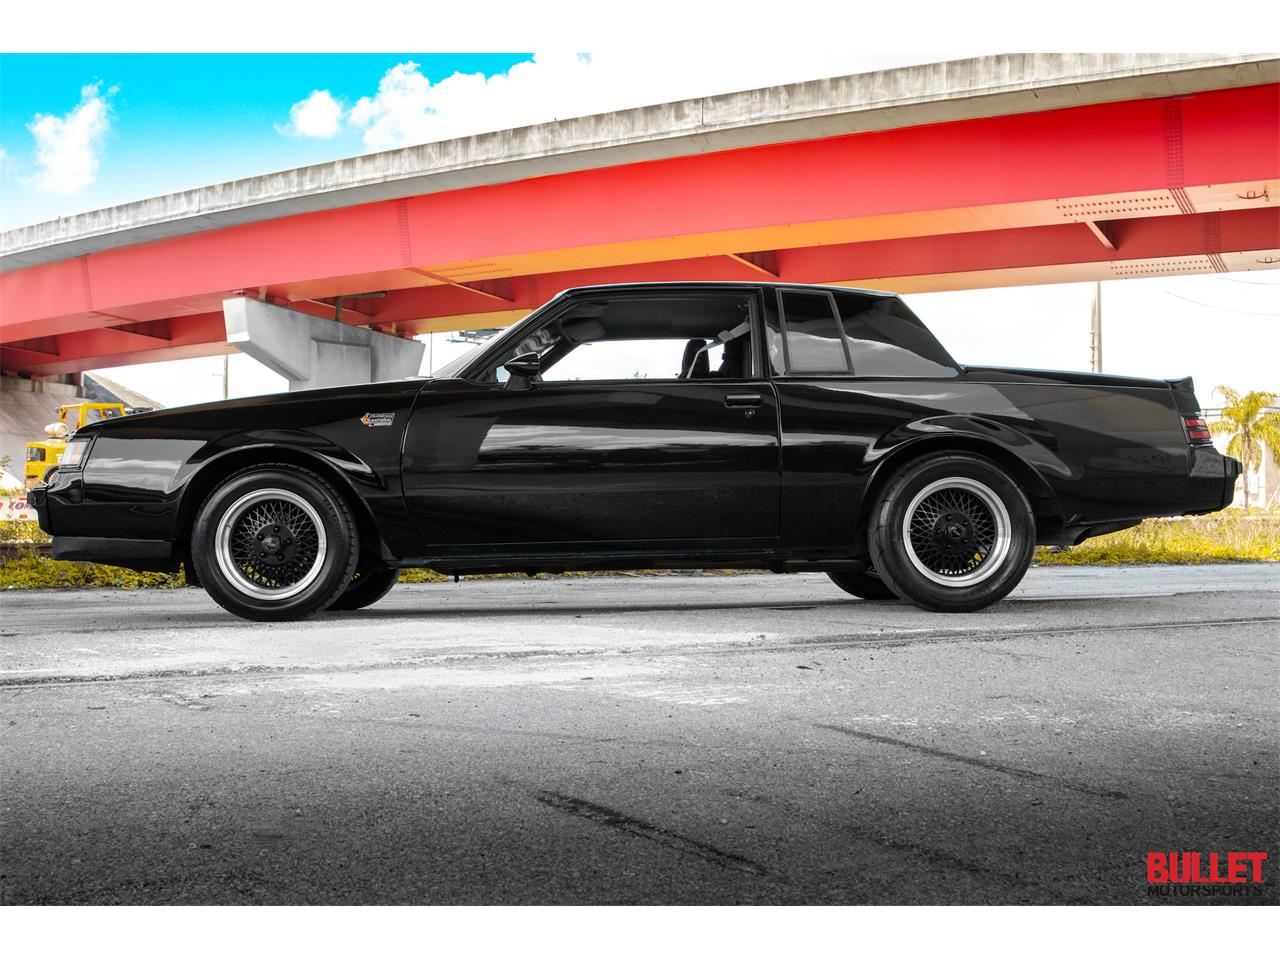 Large Picture of '87 Buick Grand National located in Florida Offered by Bullet Motorsports Inc - PSK7